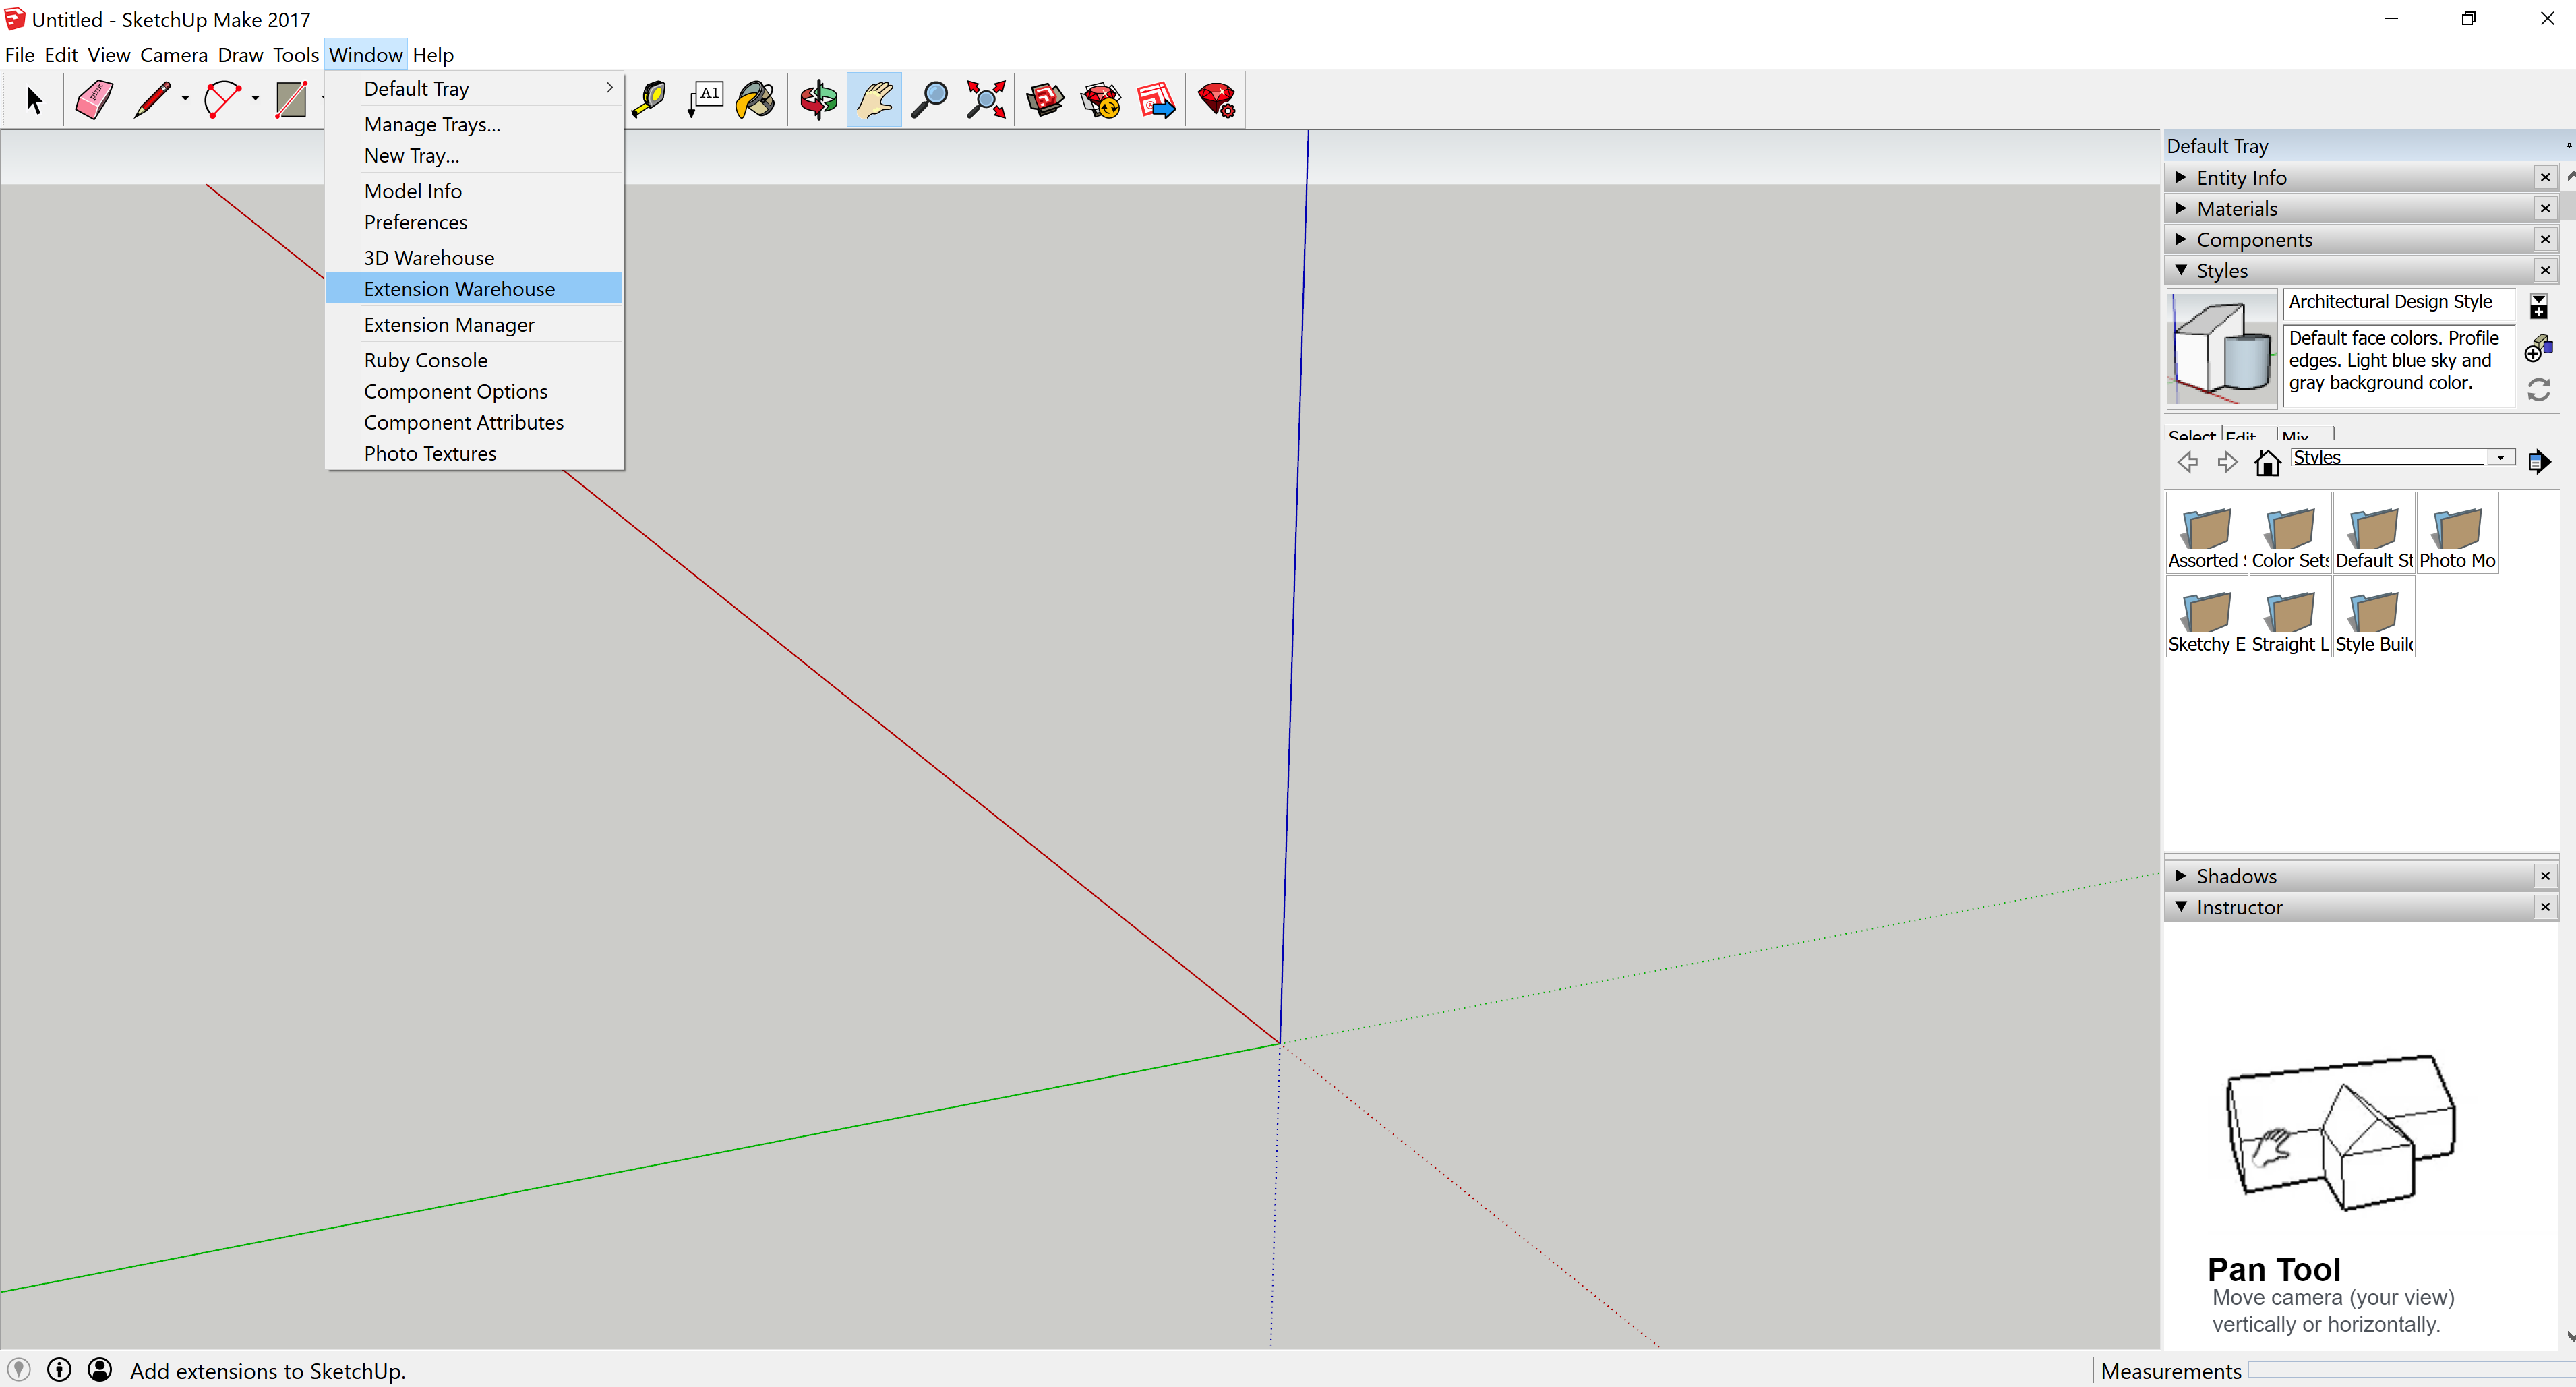 """SketchUp: """"The file was created in a newer version"""""""